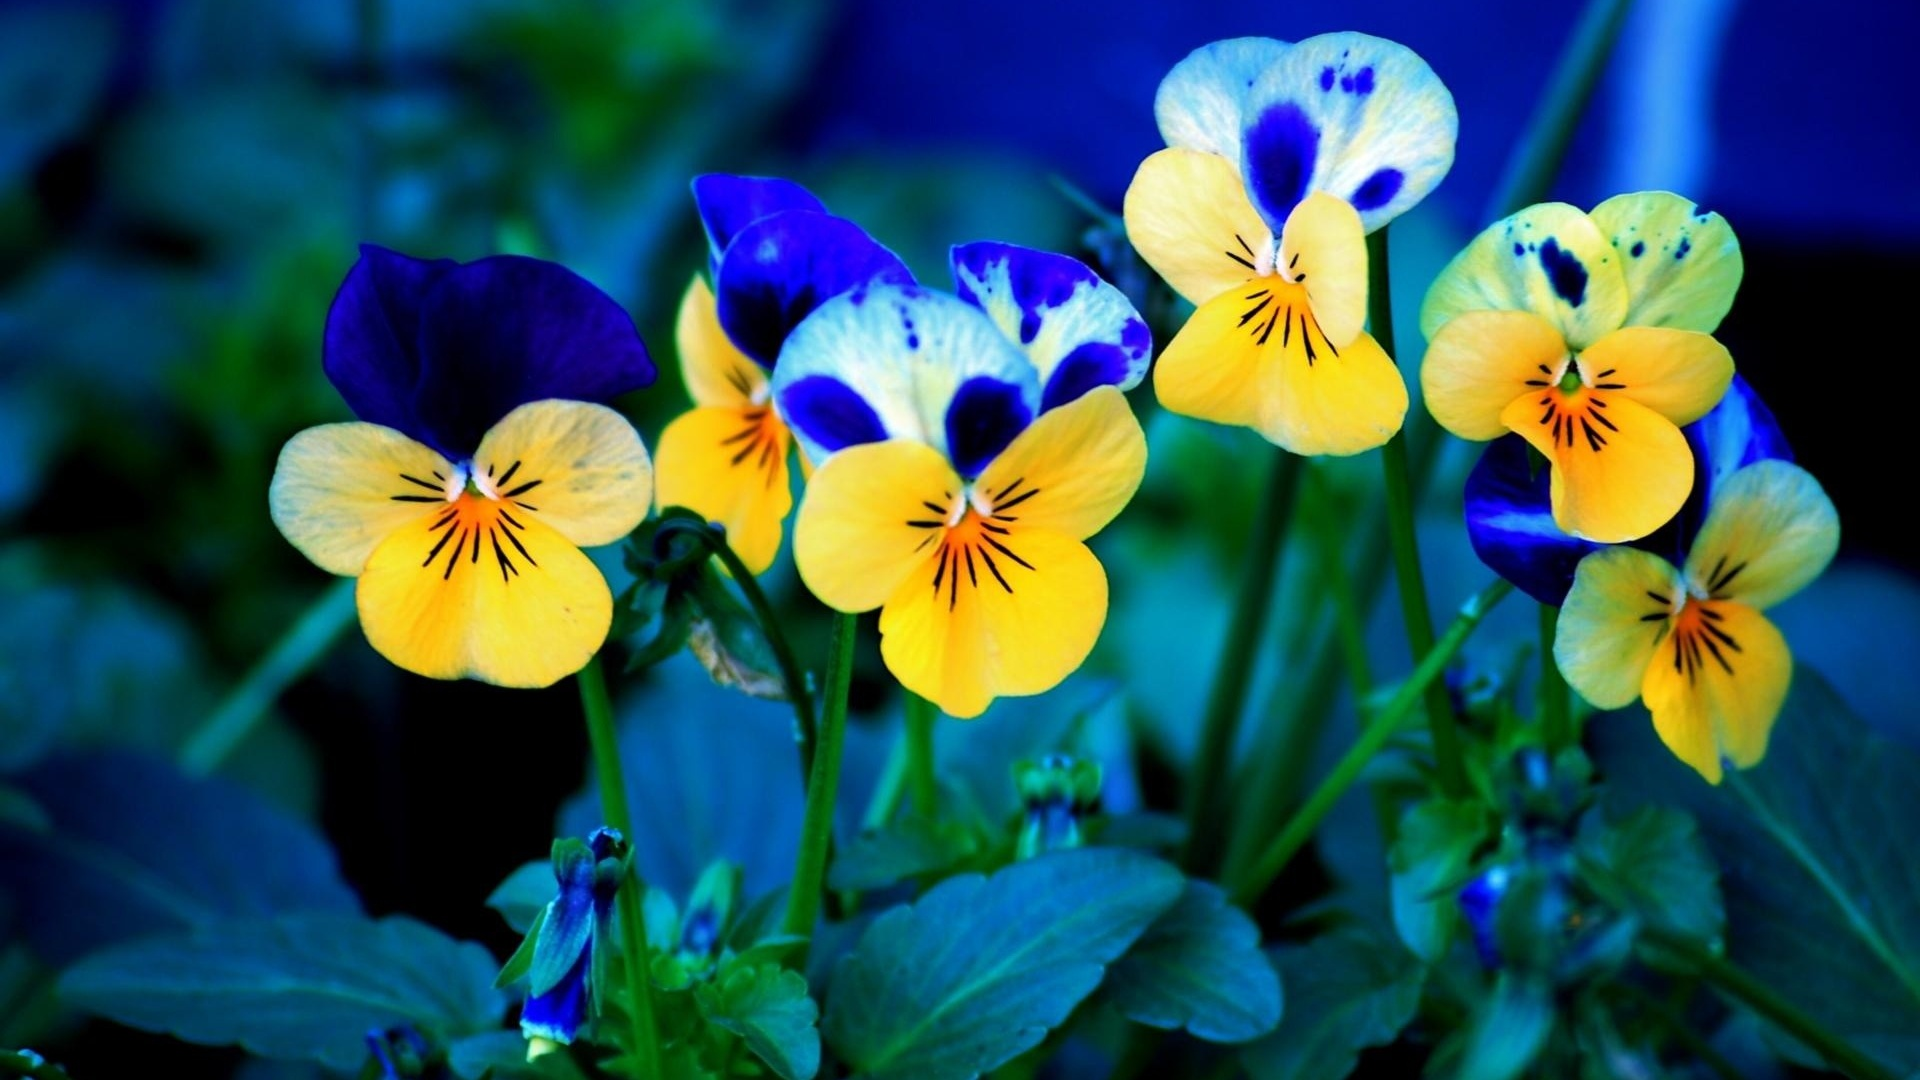 Wallpaper download free spring flowers wallpaper pic wpb00396 download mightylinksfo